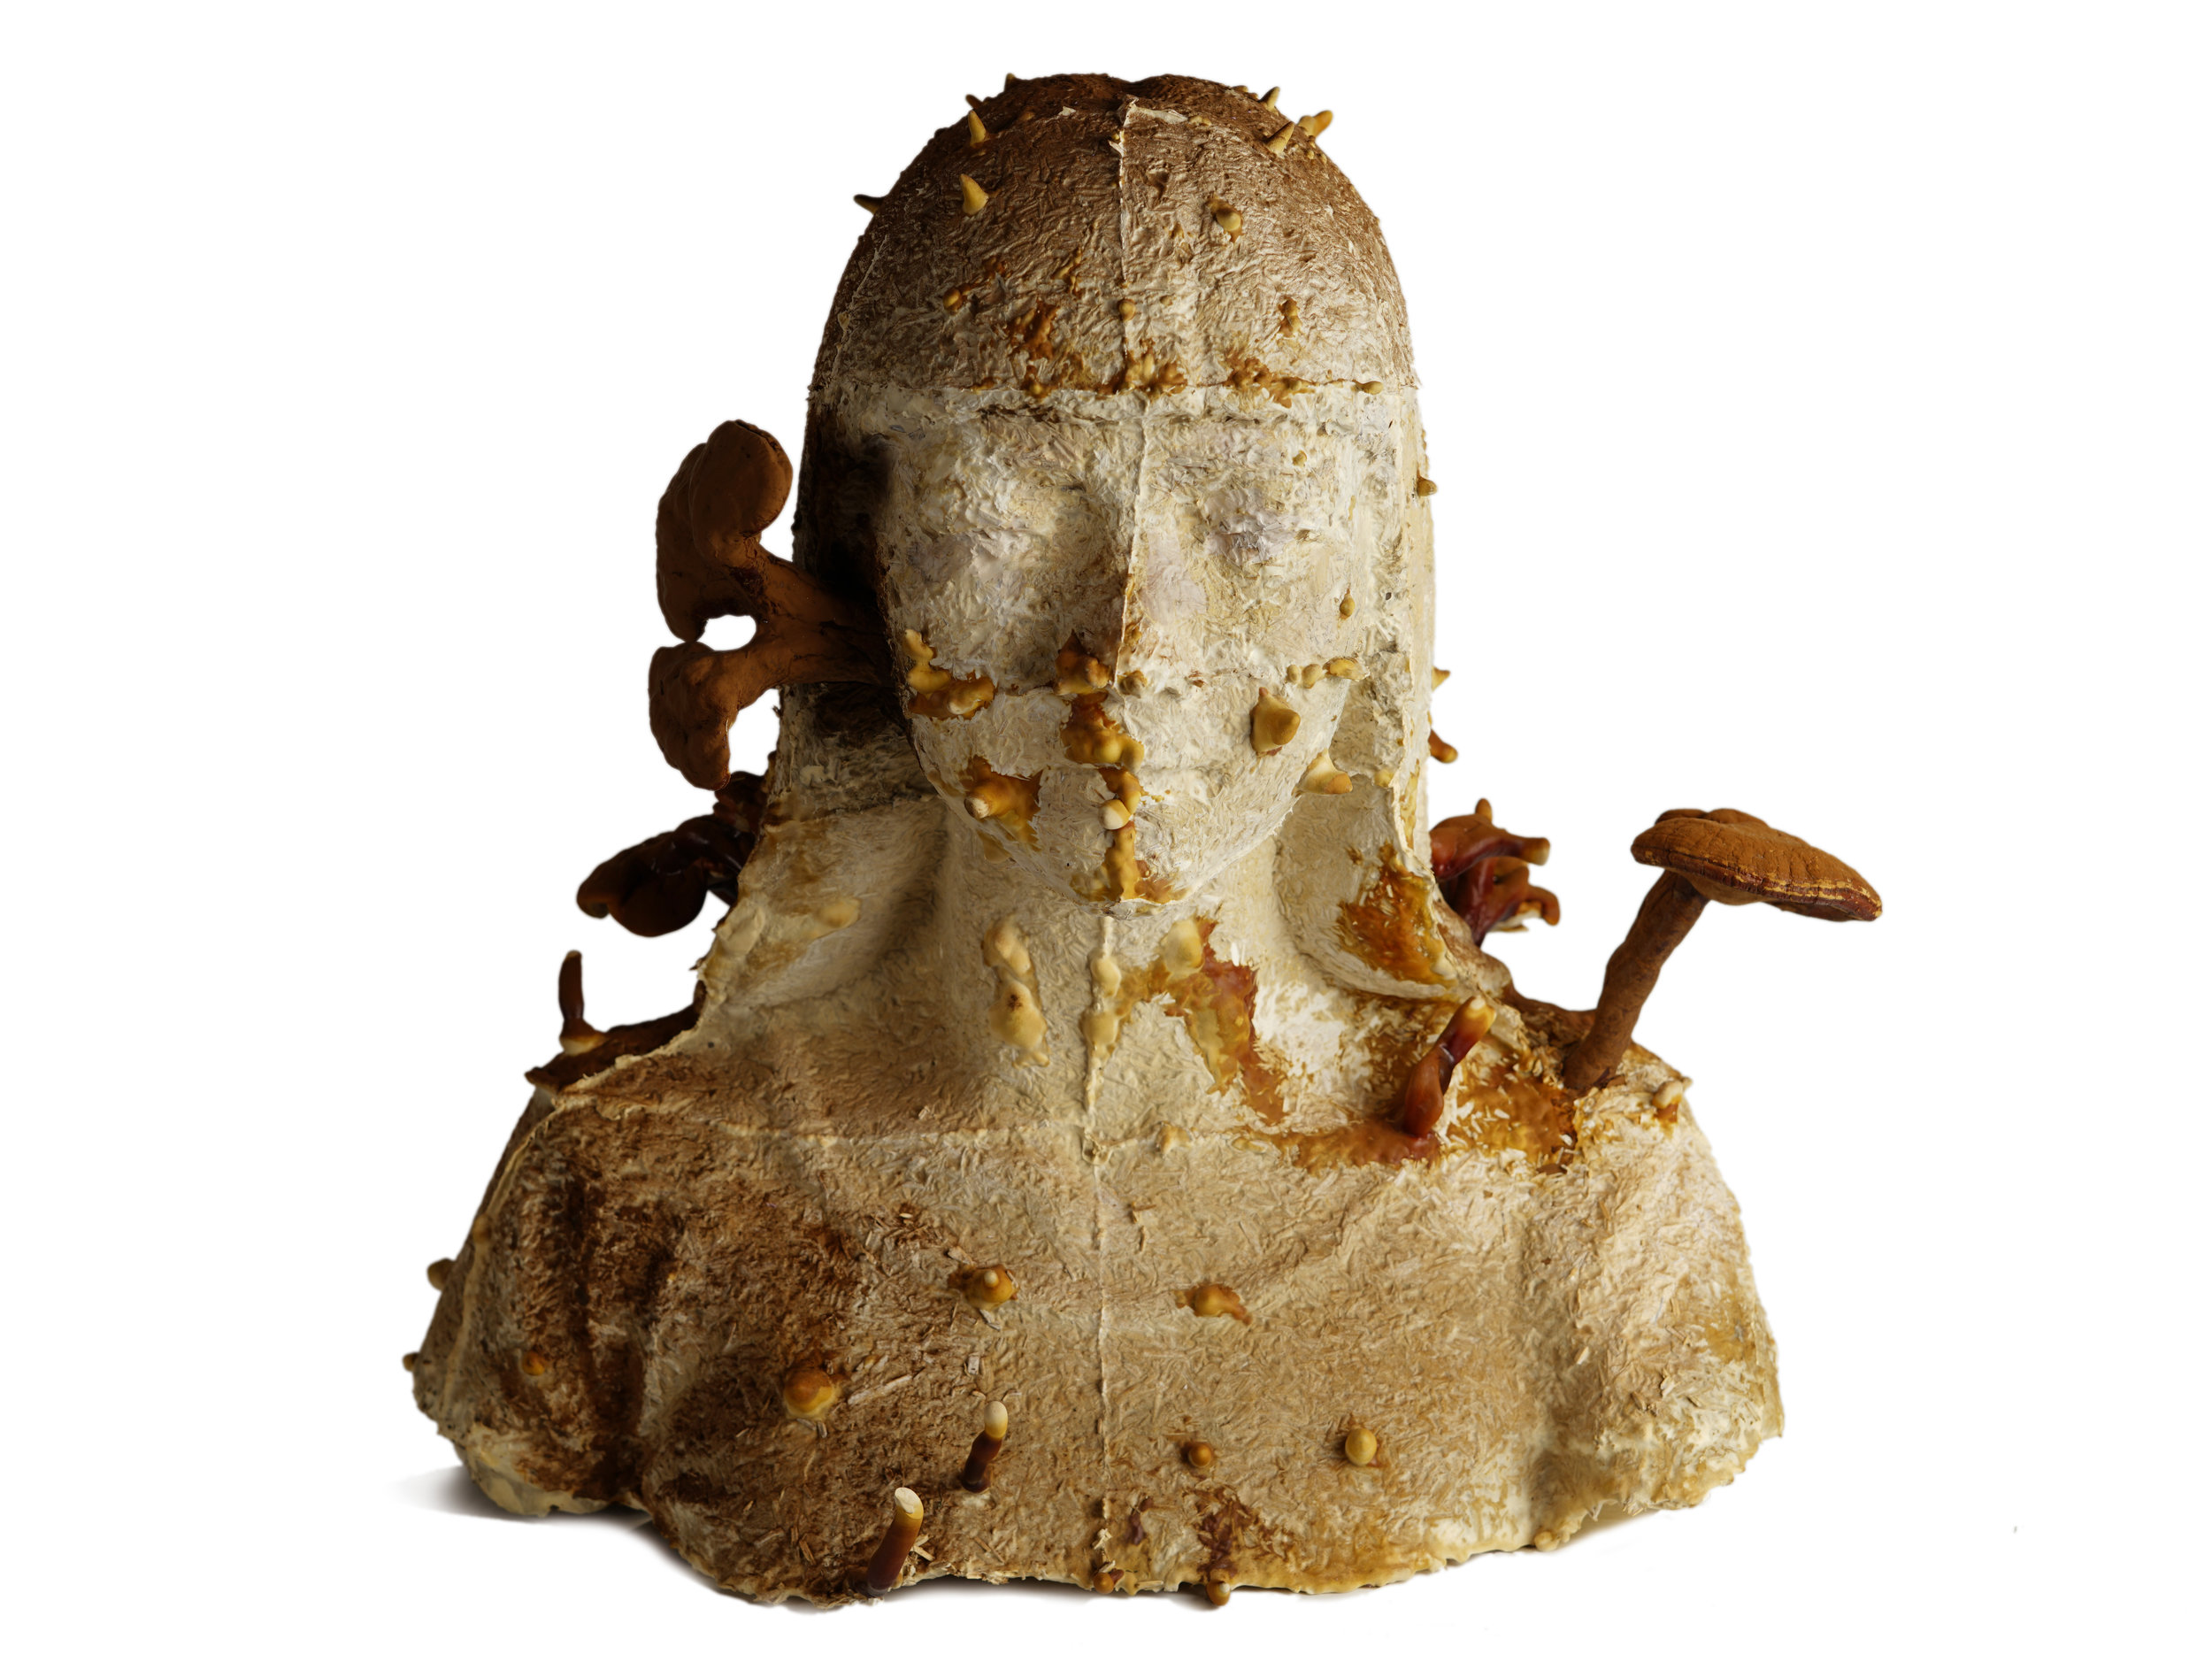 Lingzhi Girl VII , cultivated lingzhi mushrooms and wood chips, 2016-20